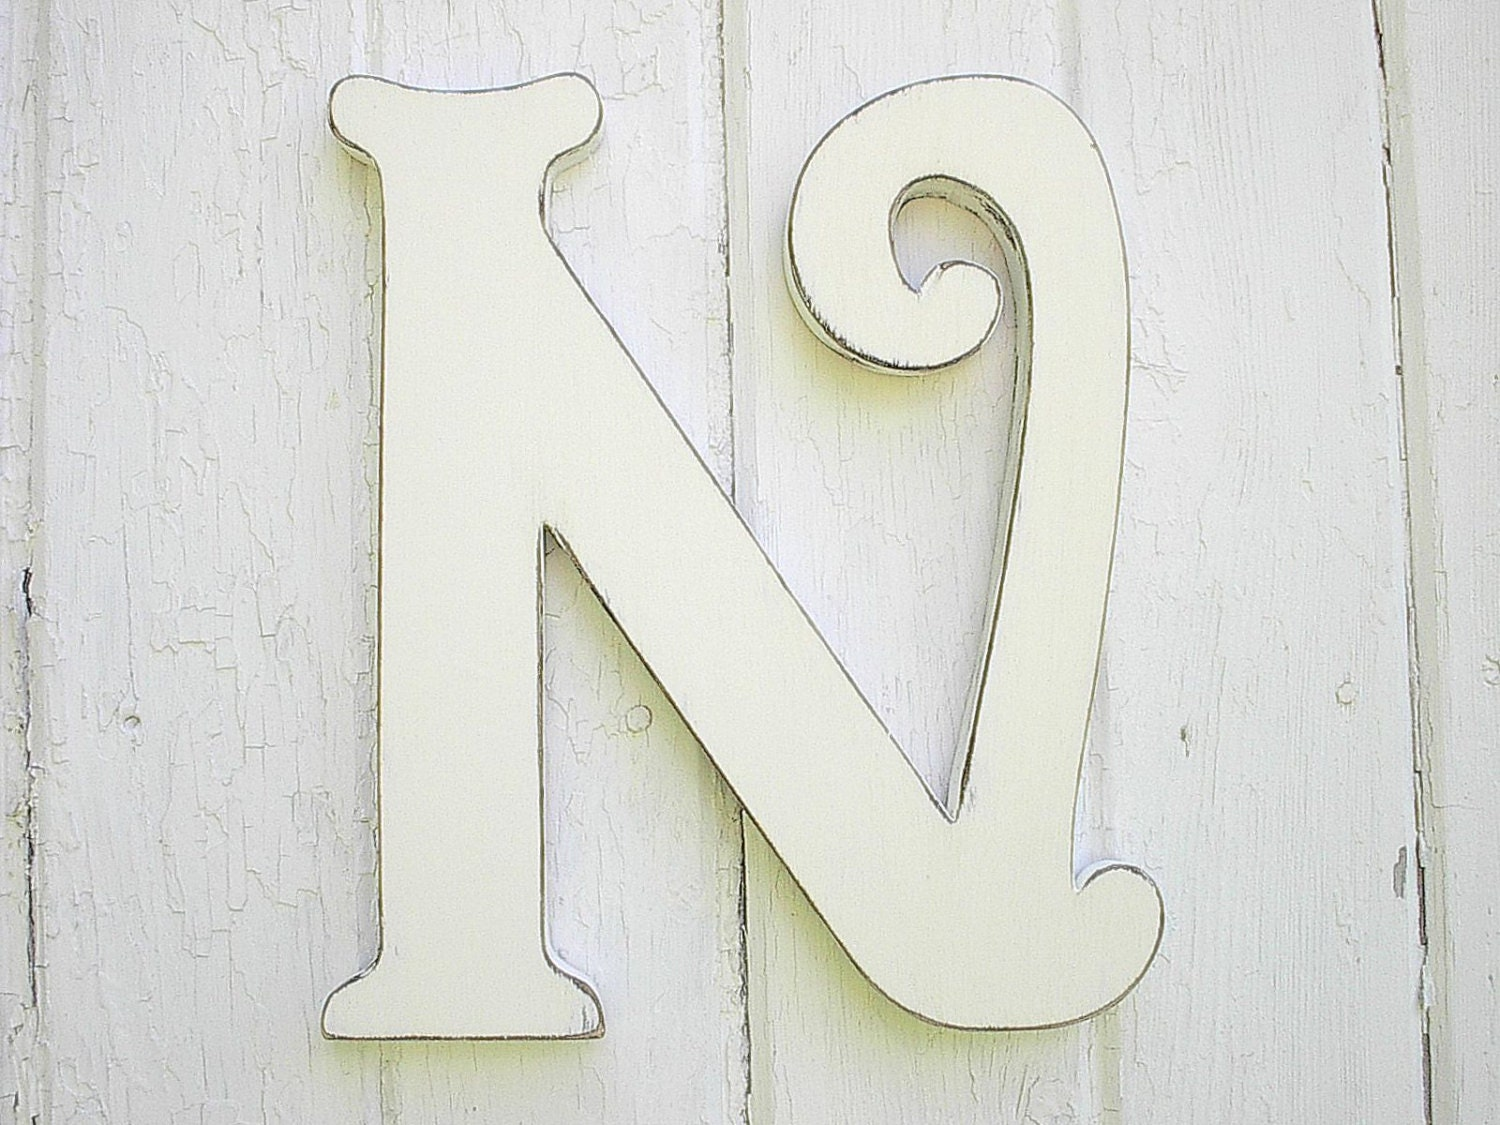 decorative letters for wall wooden letters decorative n 12 inch distressed white wall 21332 | il fullxfull.916314634 46r7